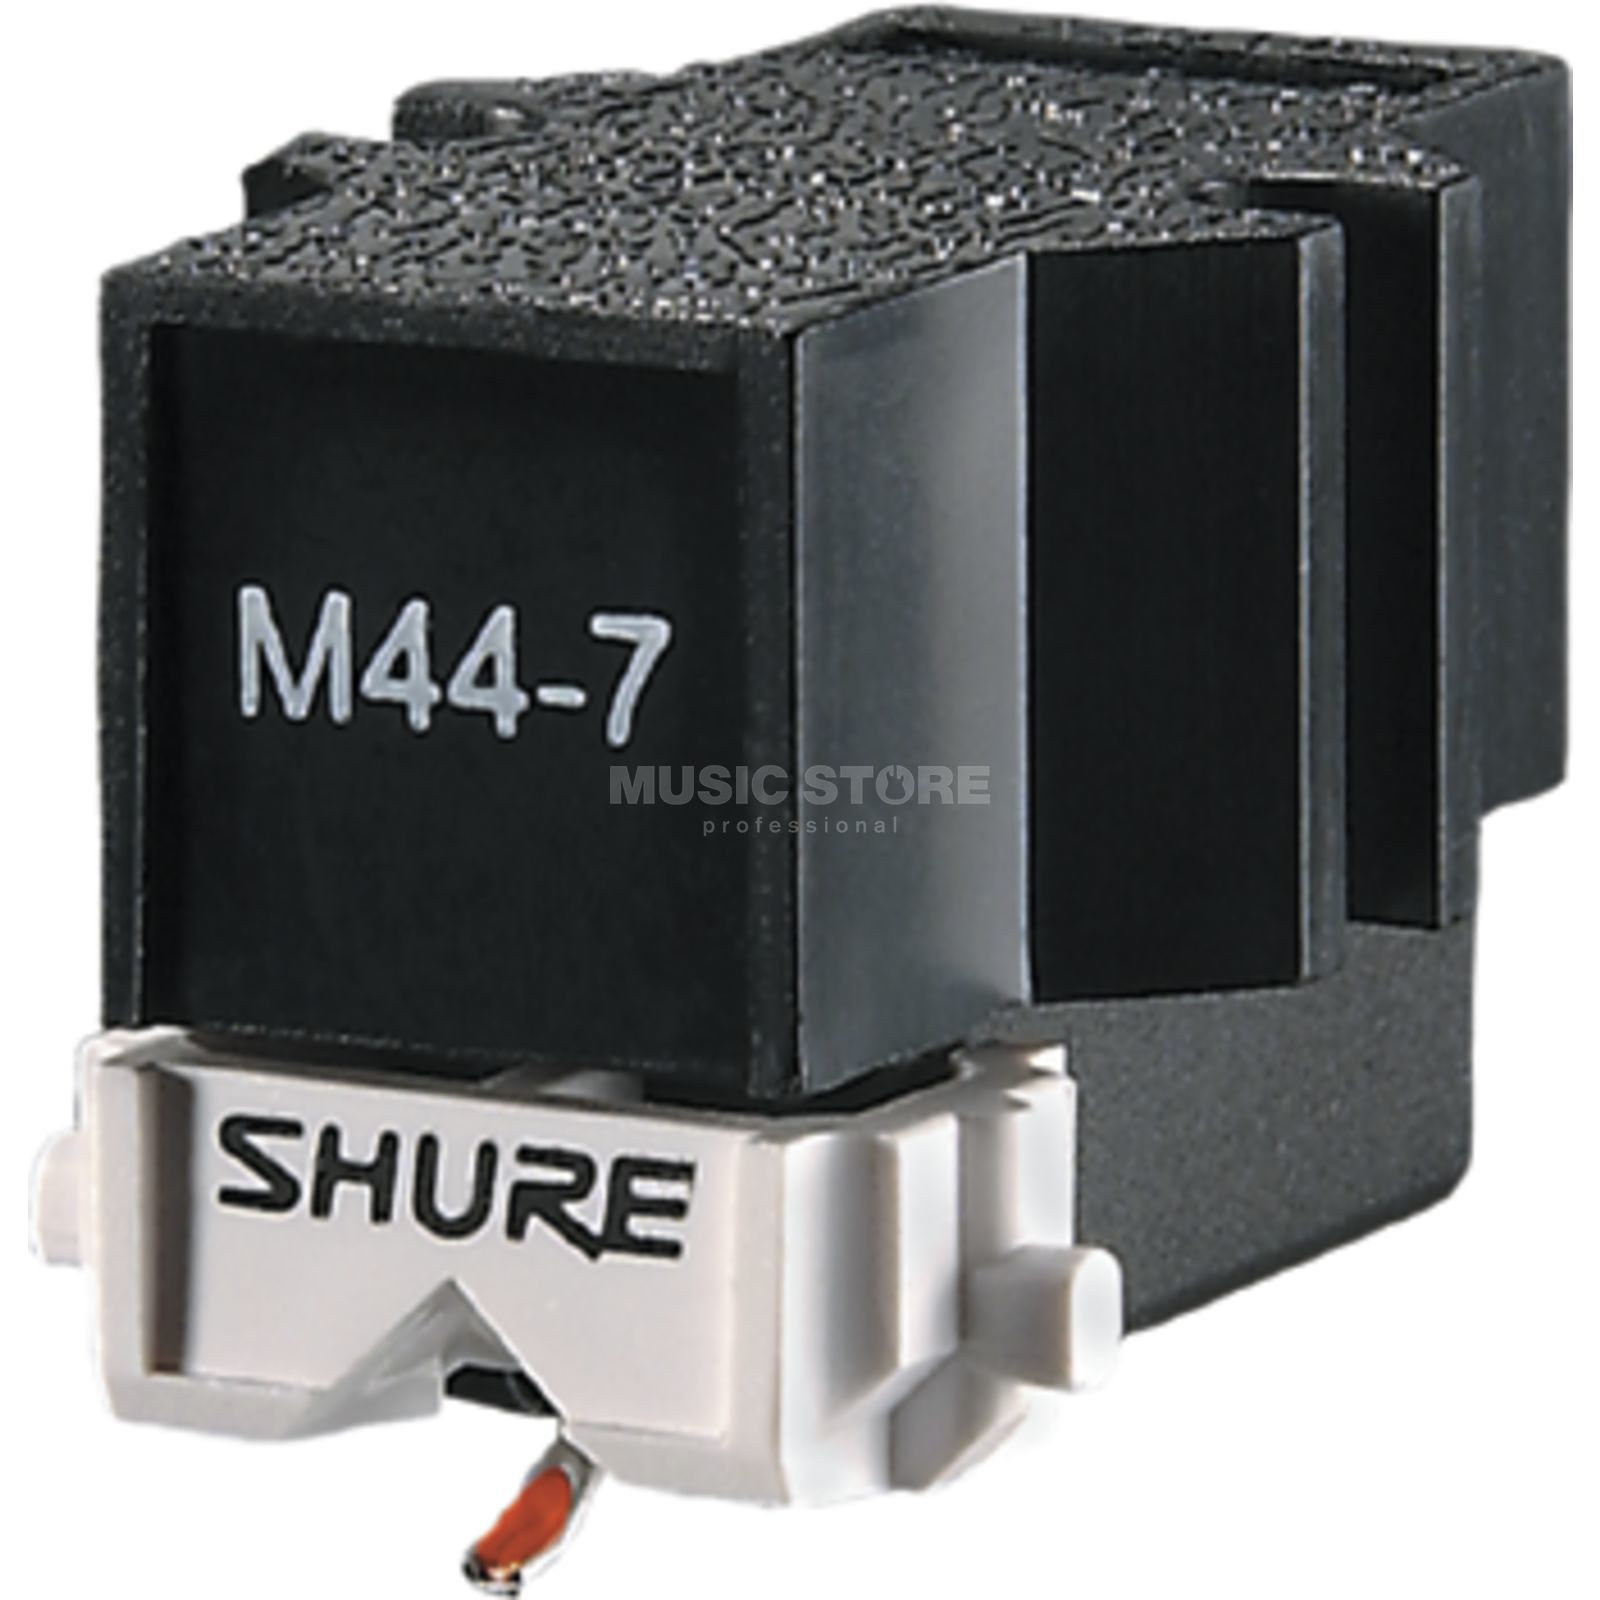 Shure M44-7 Cartridge and Stylus    Product Image